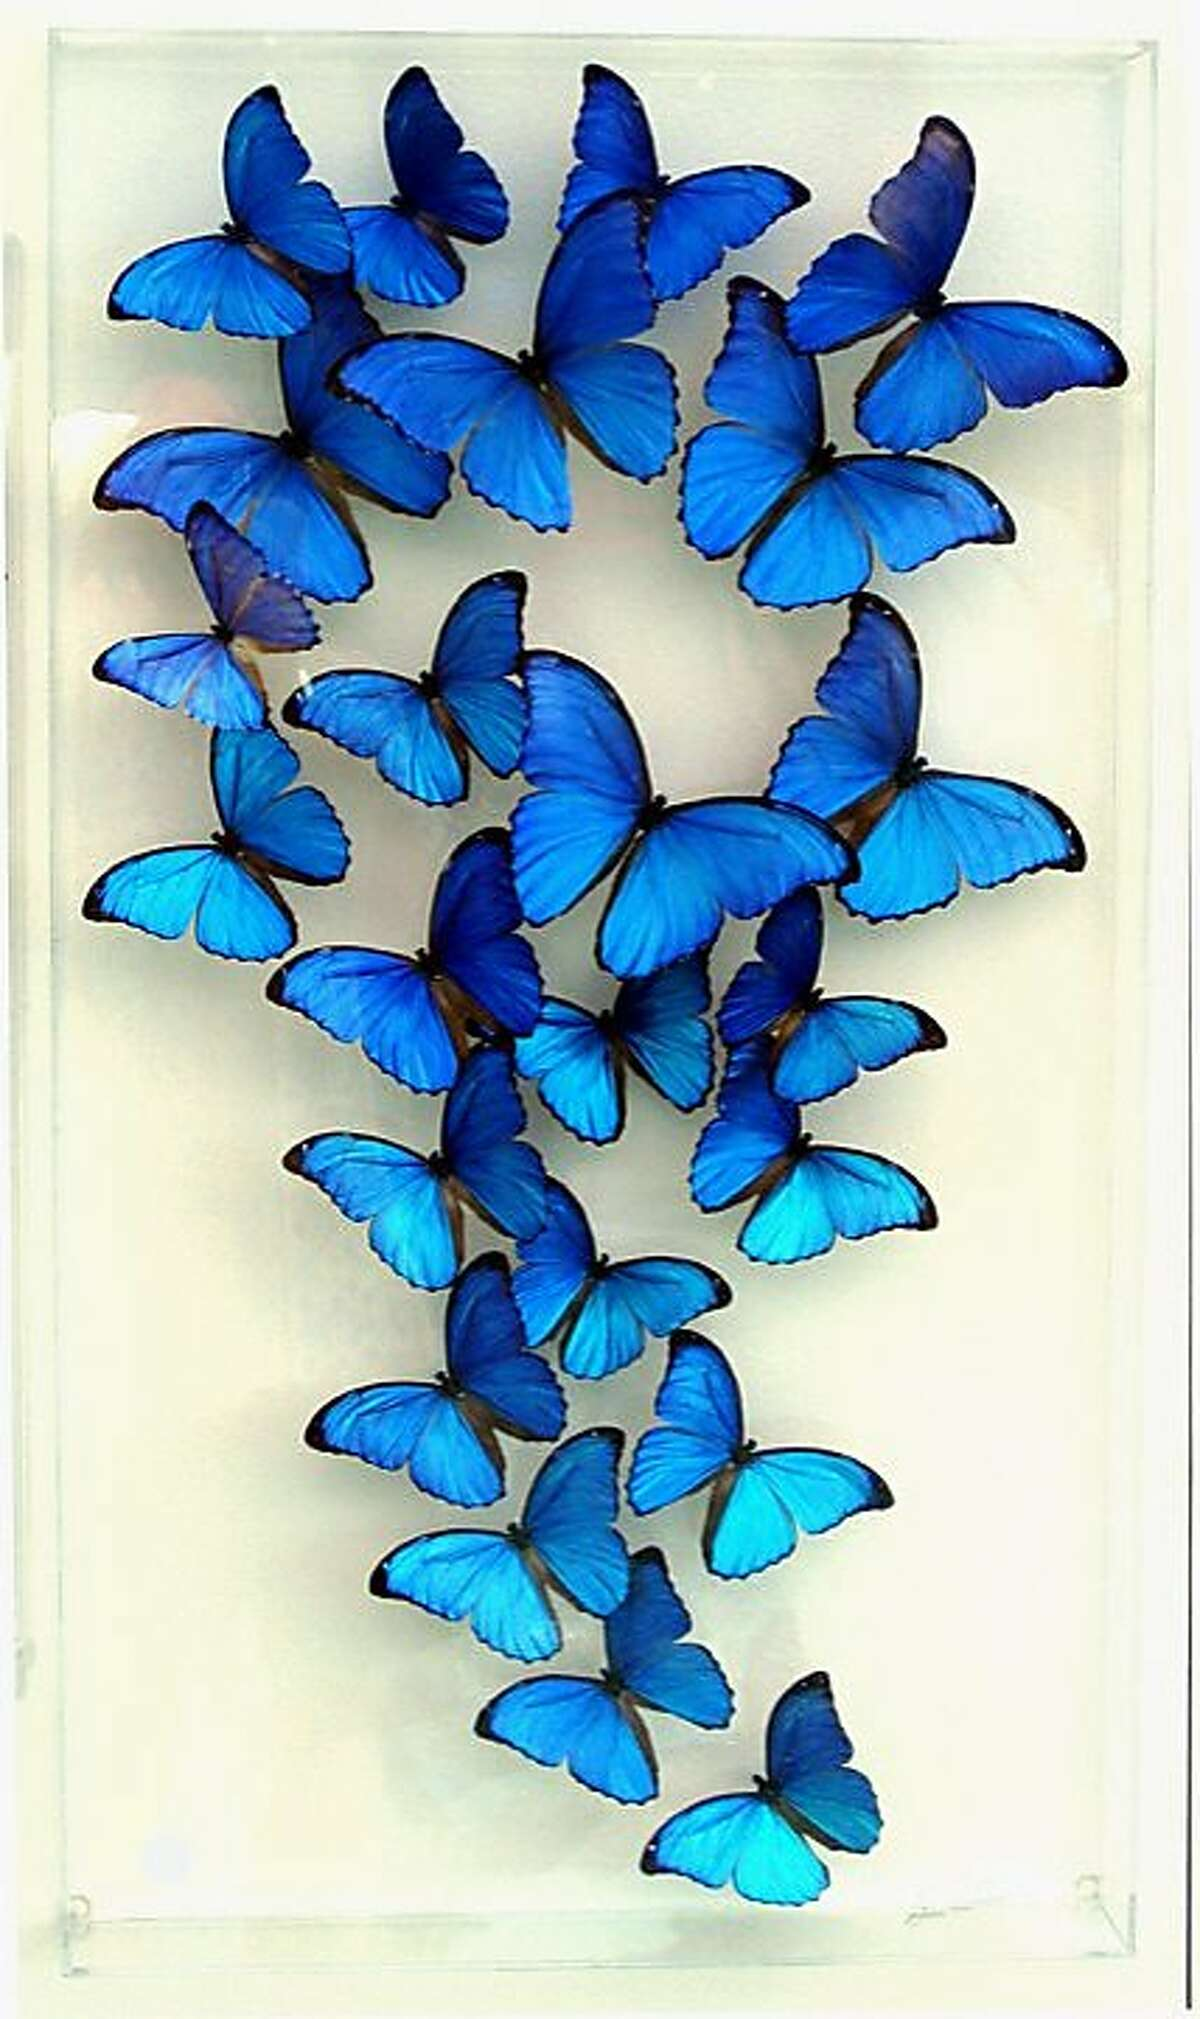 Butterflies enclosed in an acrylic case by Steven Albaranes will be featured at the art fair Burlingame on the Avenue this weekend.